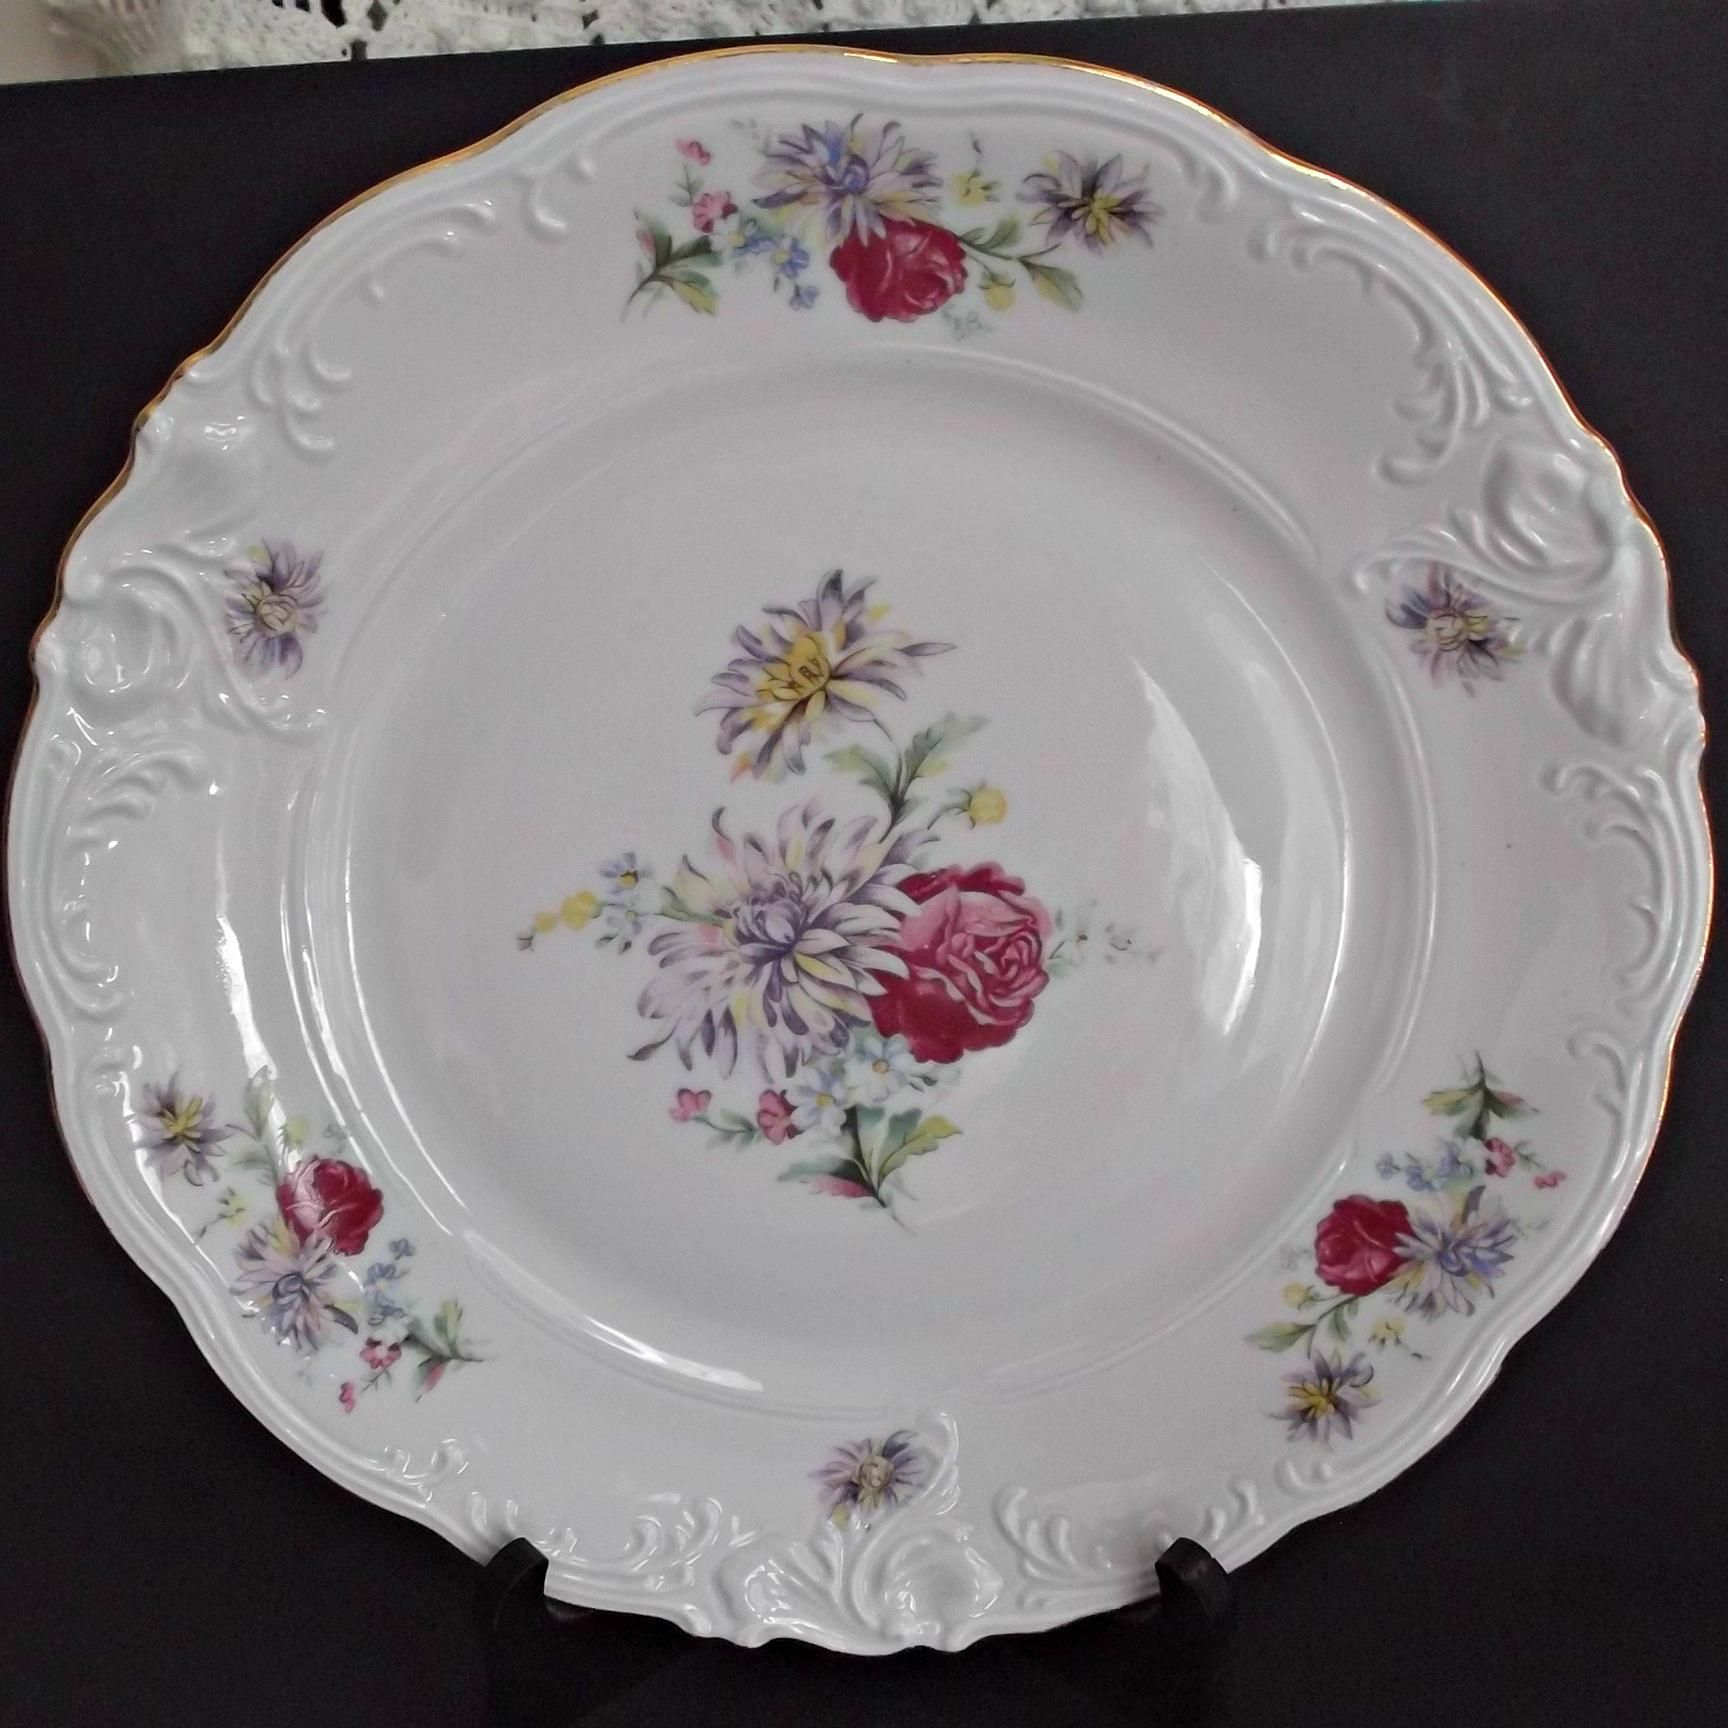 Here is a set of seven vintage china 10.5 inch dinner plates marked Walbrzych & Rosecrest Walbrzych Poland Dinner Plates Roses Mums Vintage China ...